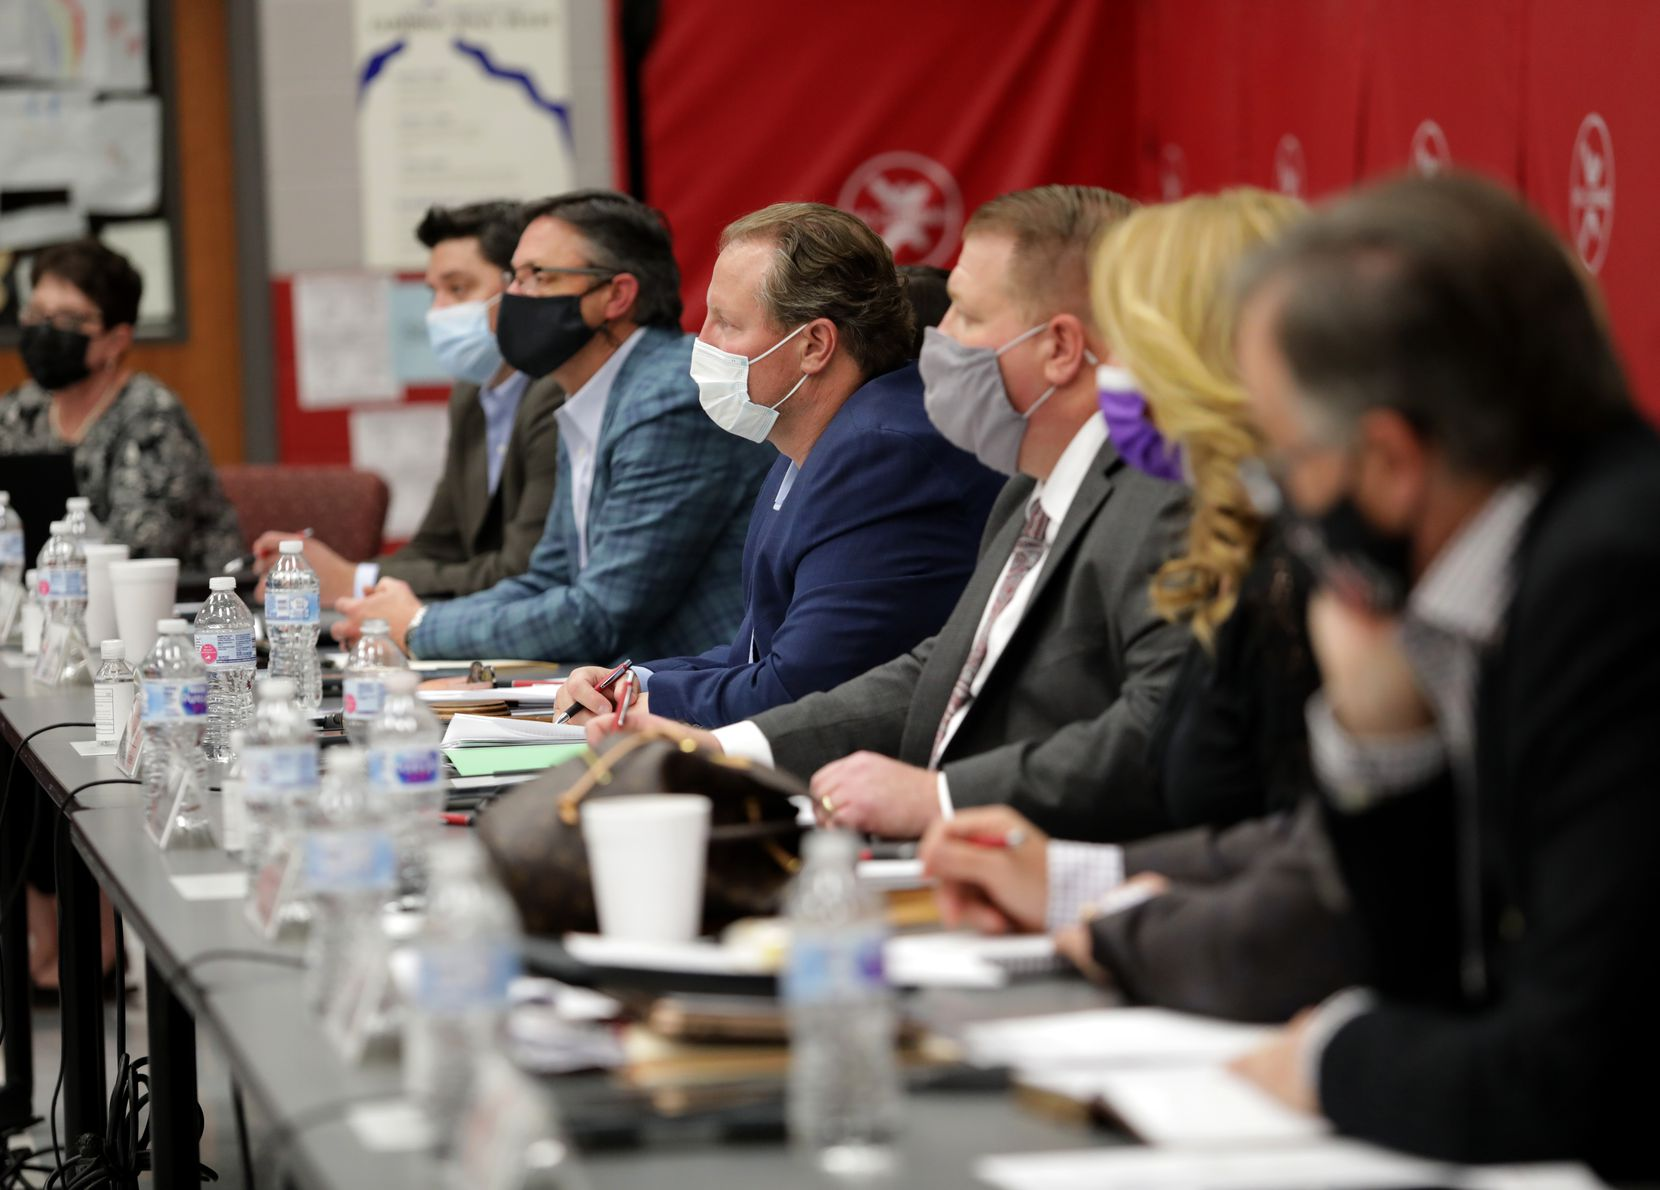 Schoolboard members hold a Lovejoy ISD public meeting at Lovejoy Elementary in Allen, Texas, on April 19, 2021.